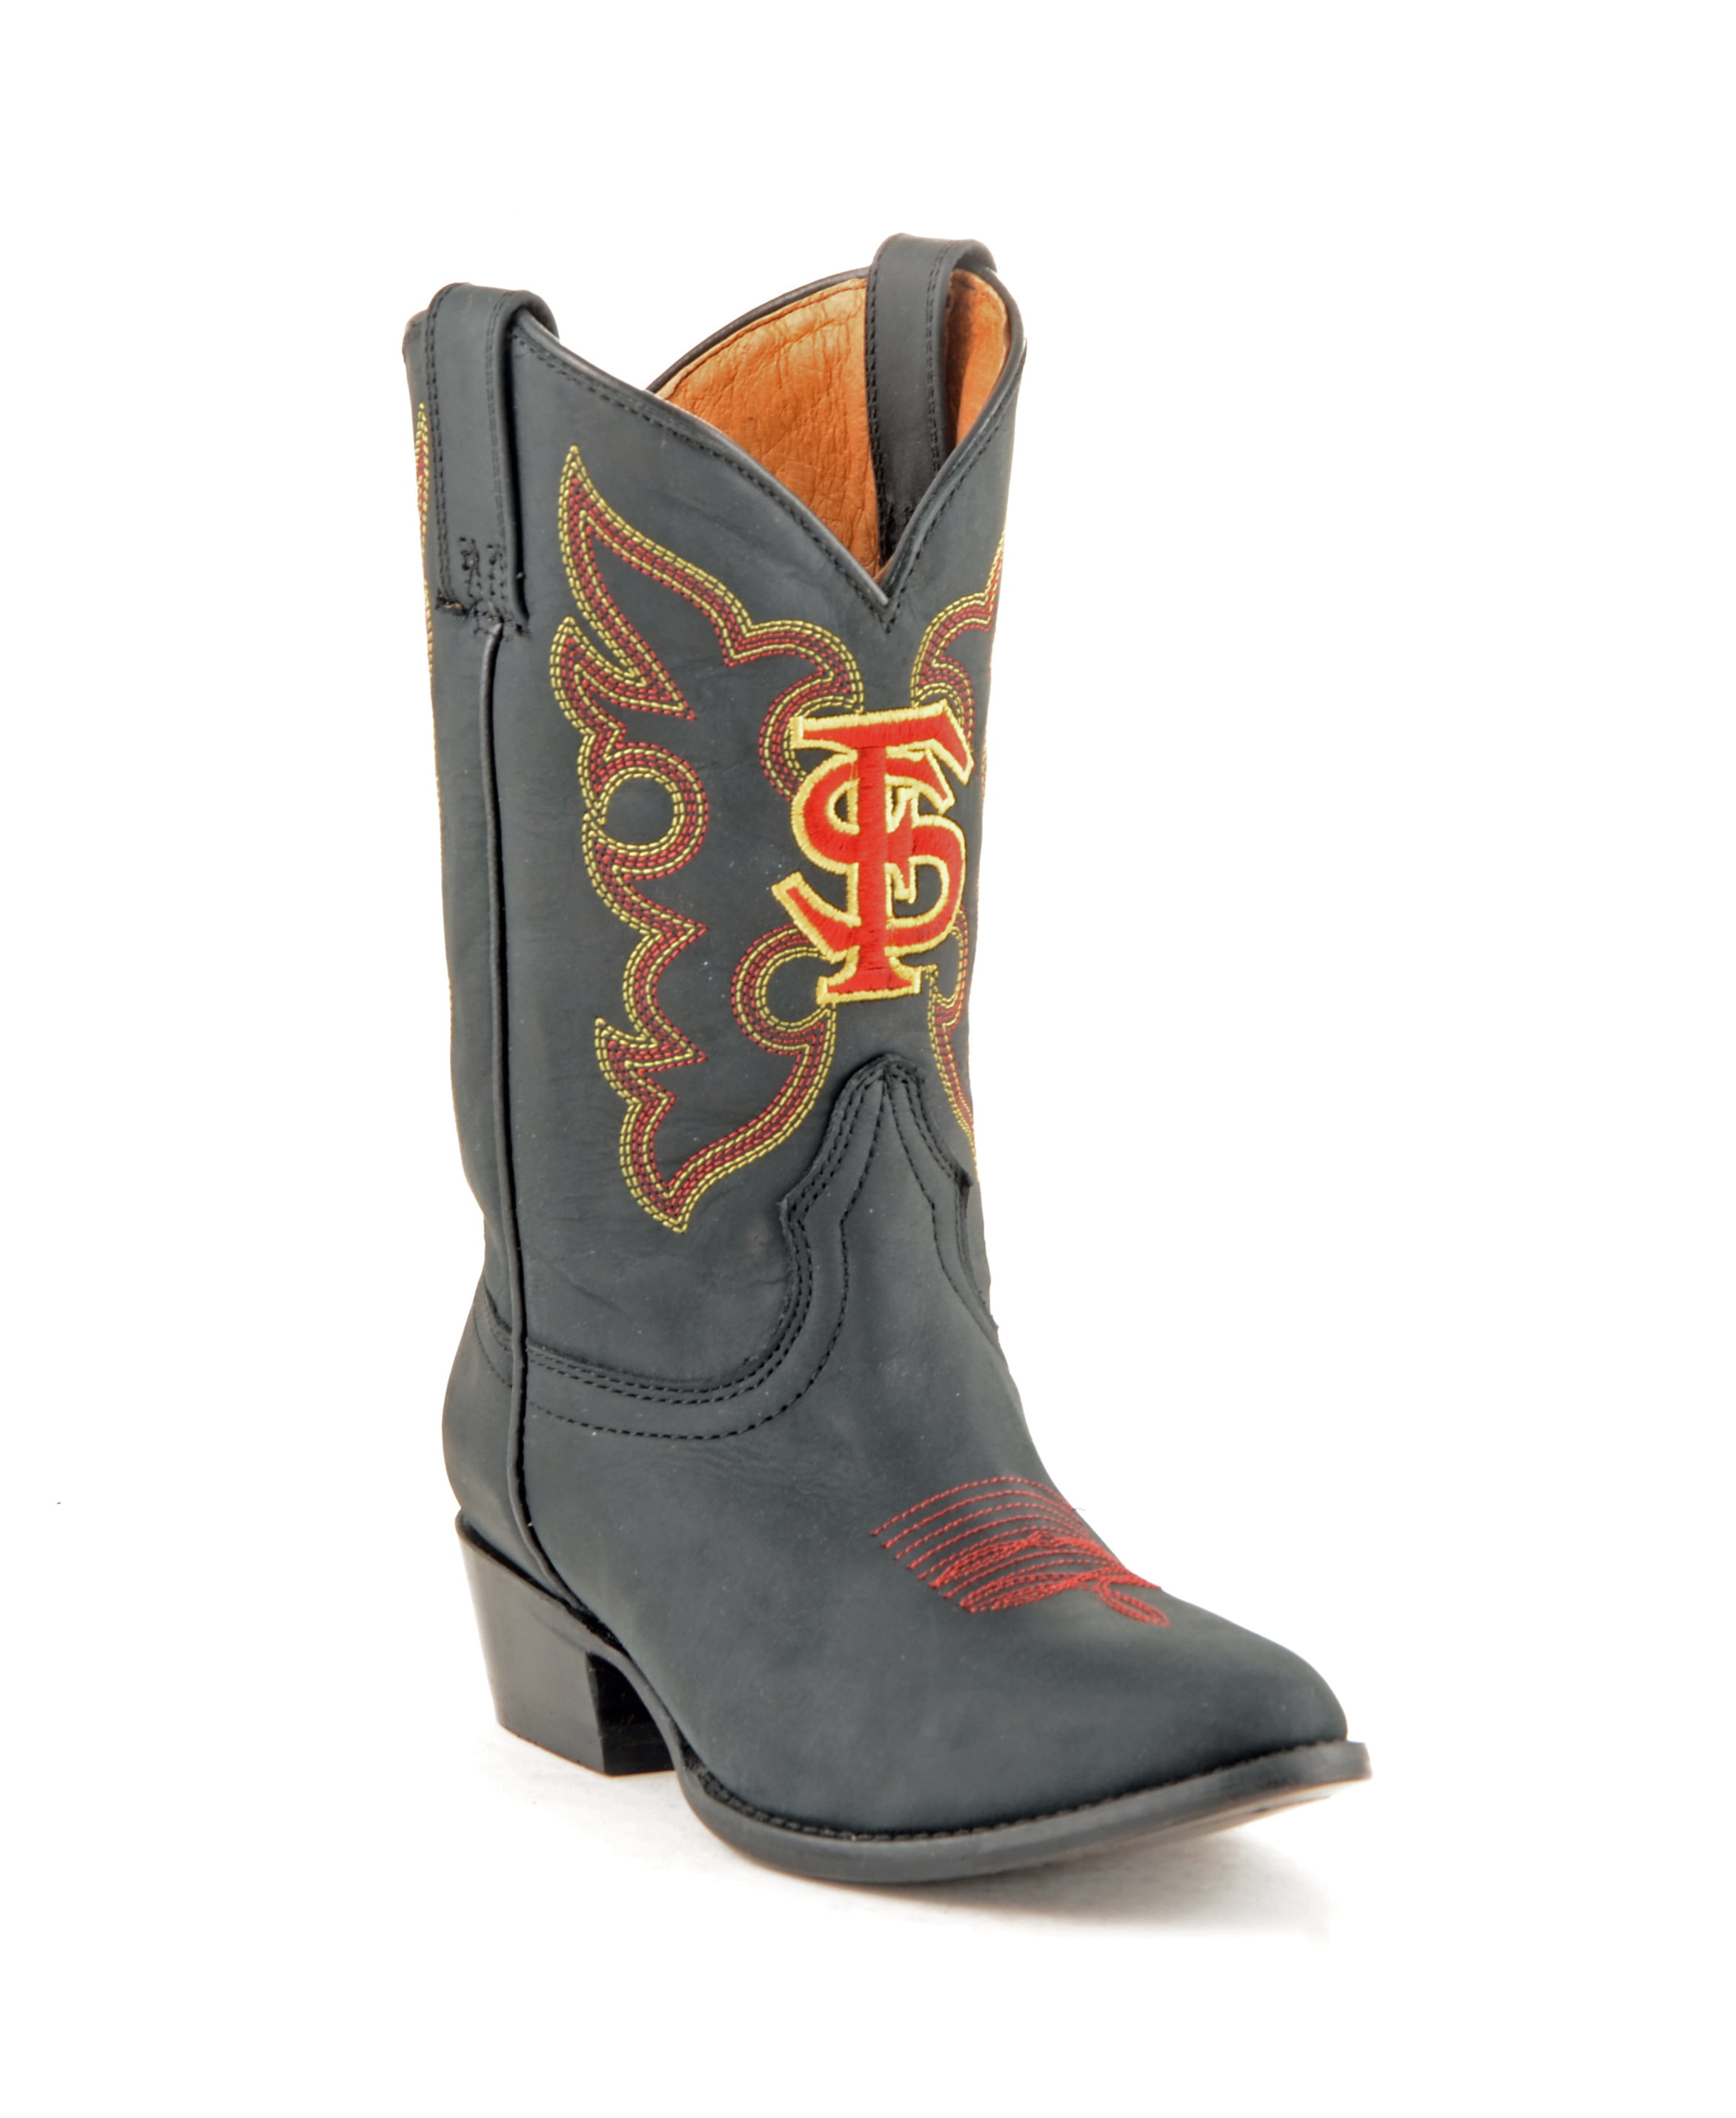 Gameday New Boys Honey Leather Florida State Embroidered Cowboy Boots by GameDay Boots